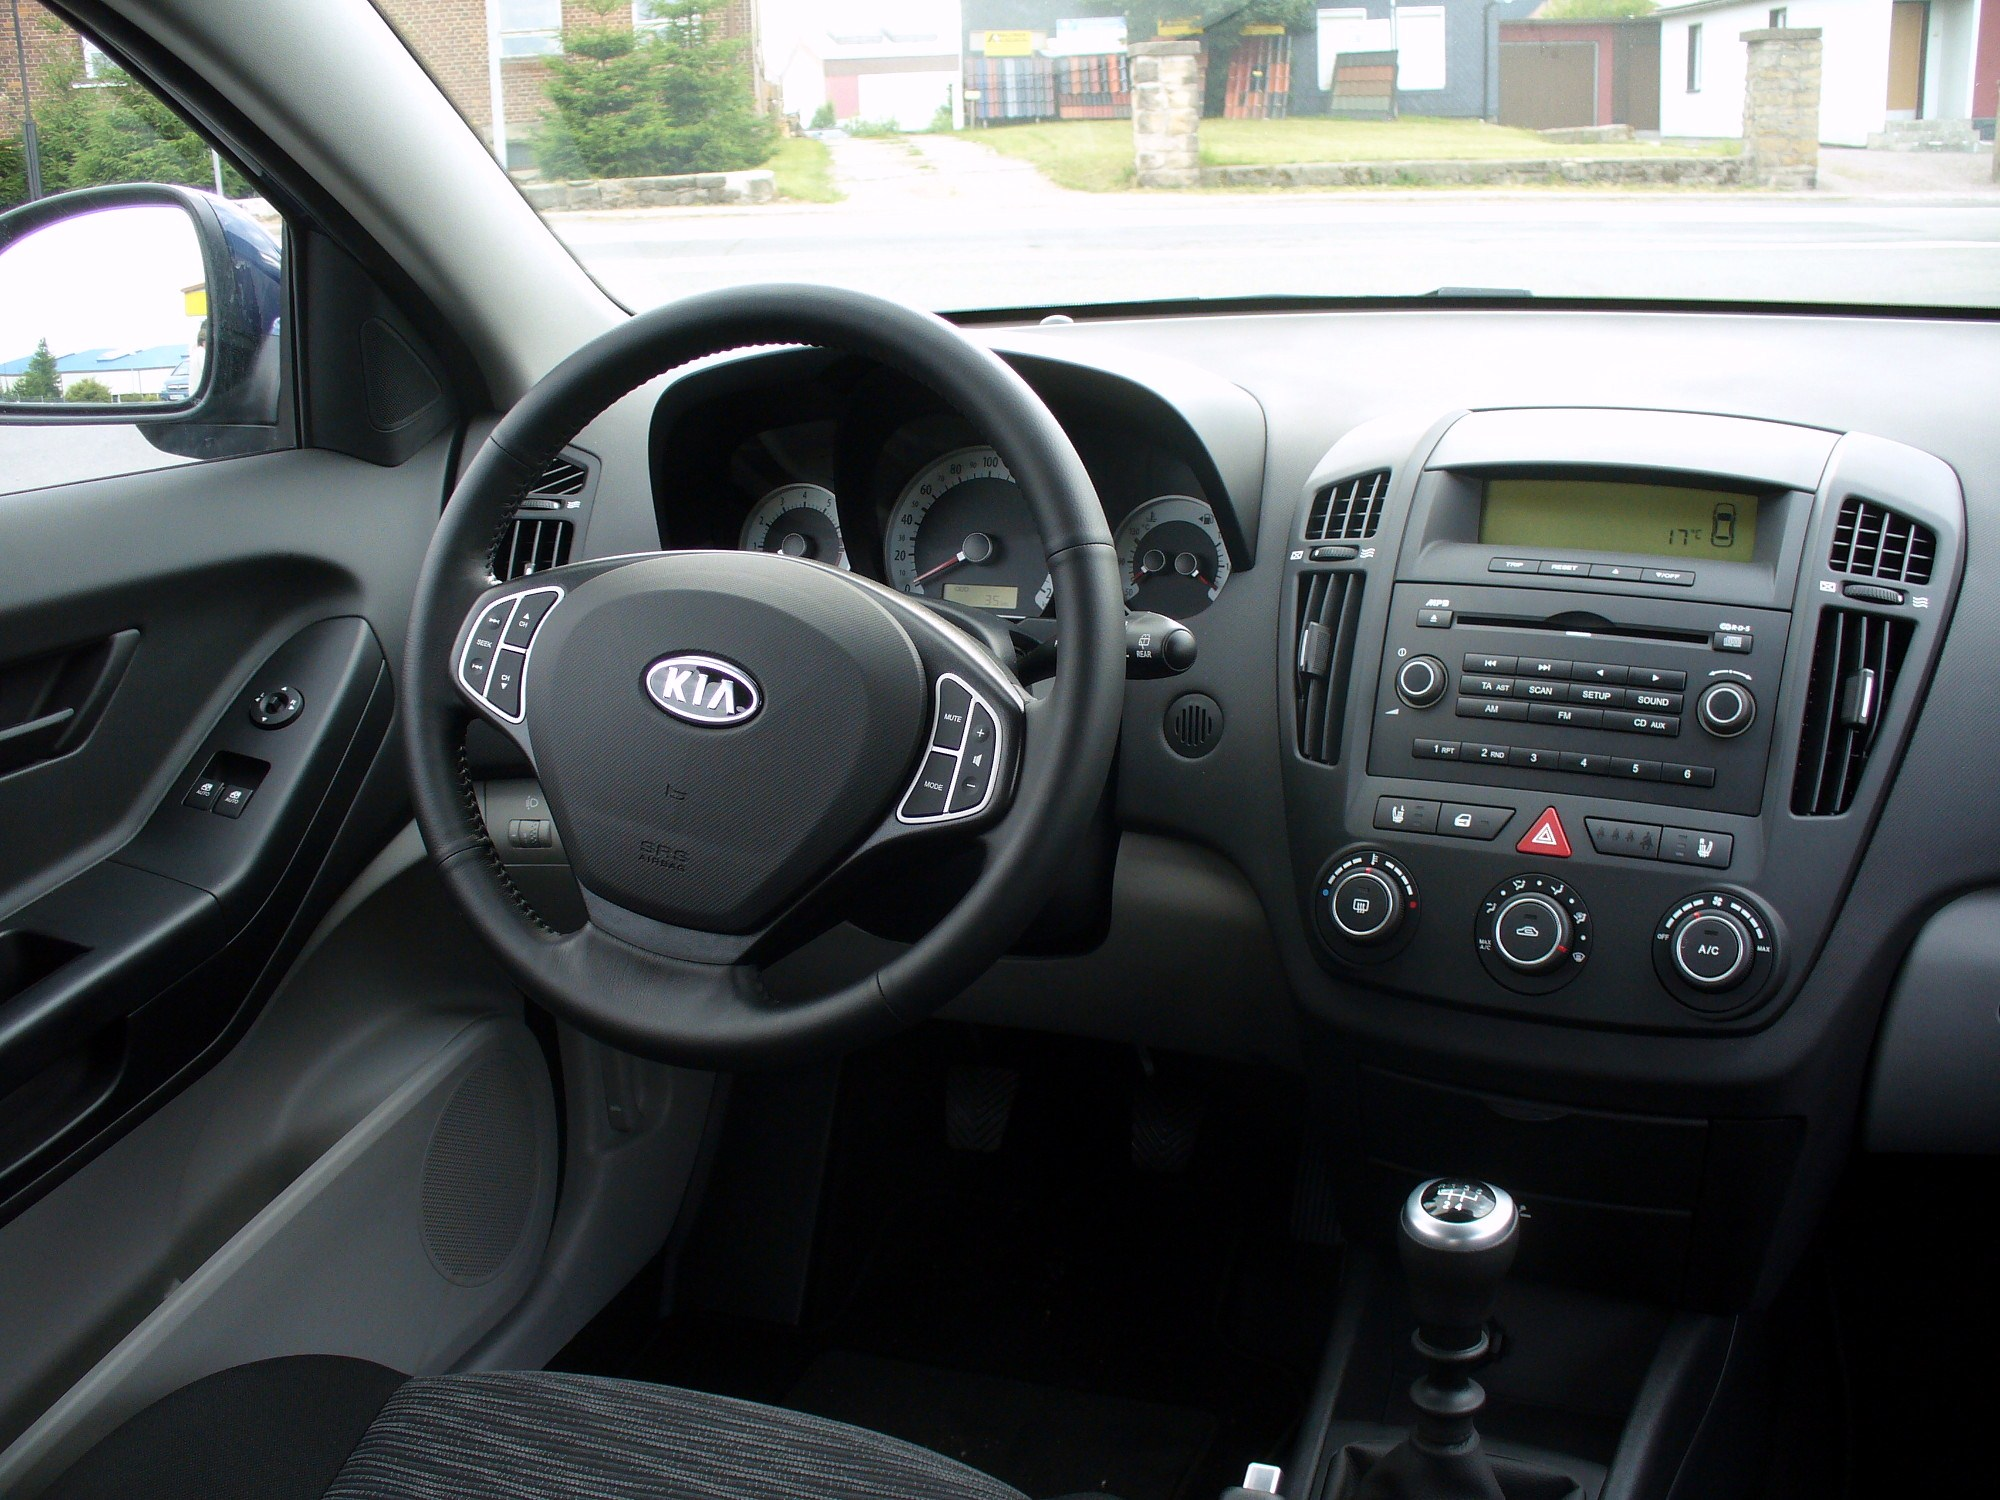 file kia pro cee 39 d 1 6 lx maggioreblau cockpit jpg wikimedia commons. Black Bedroom Furniture Sets. Home Design Ideas